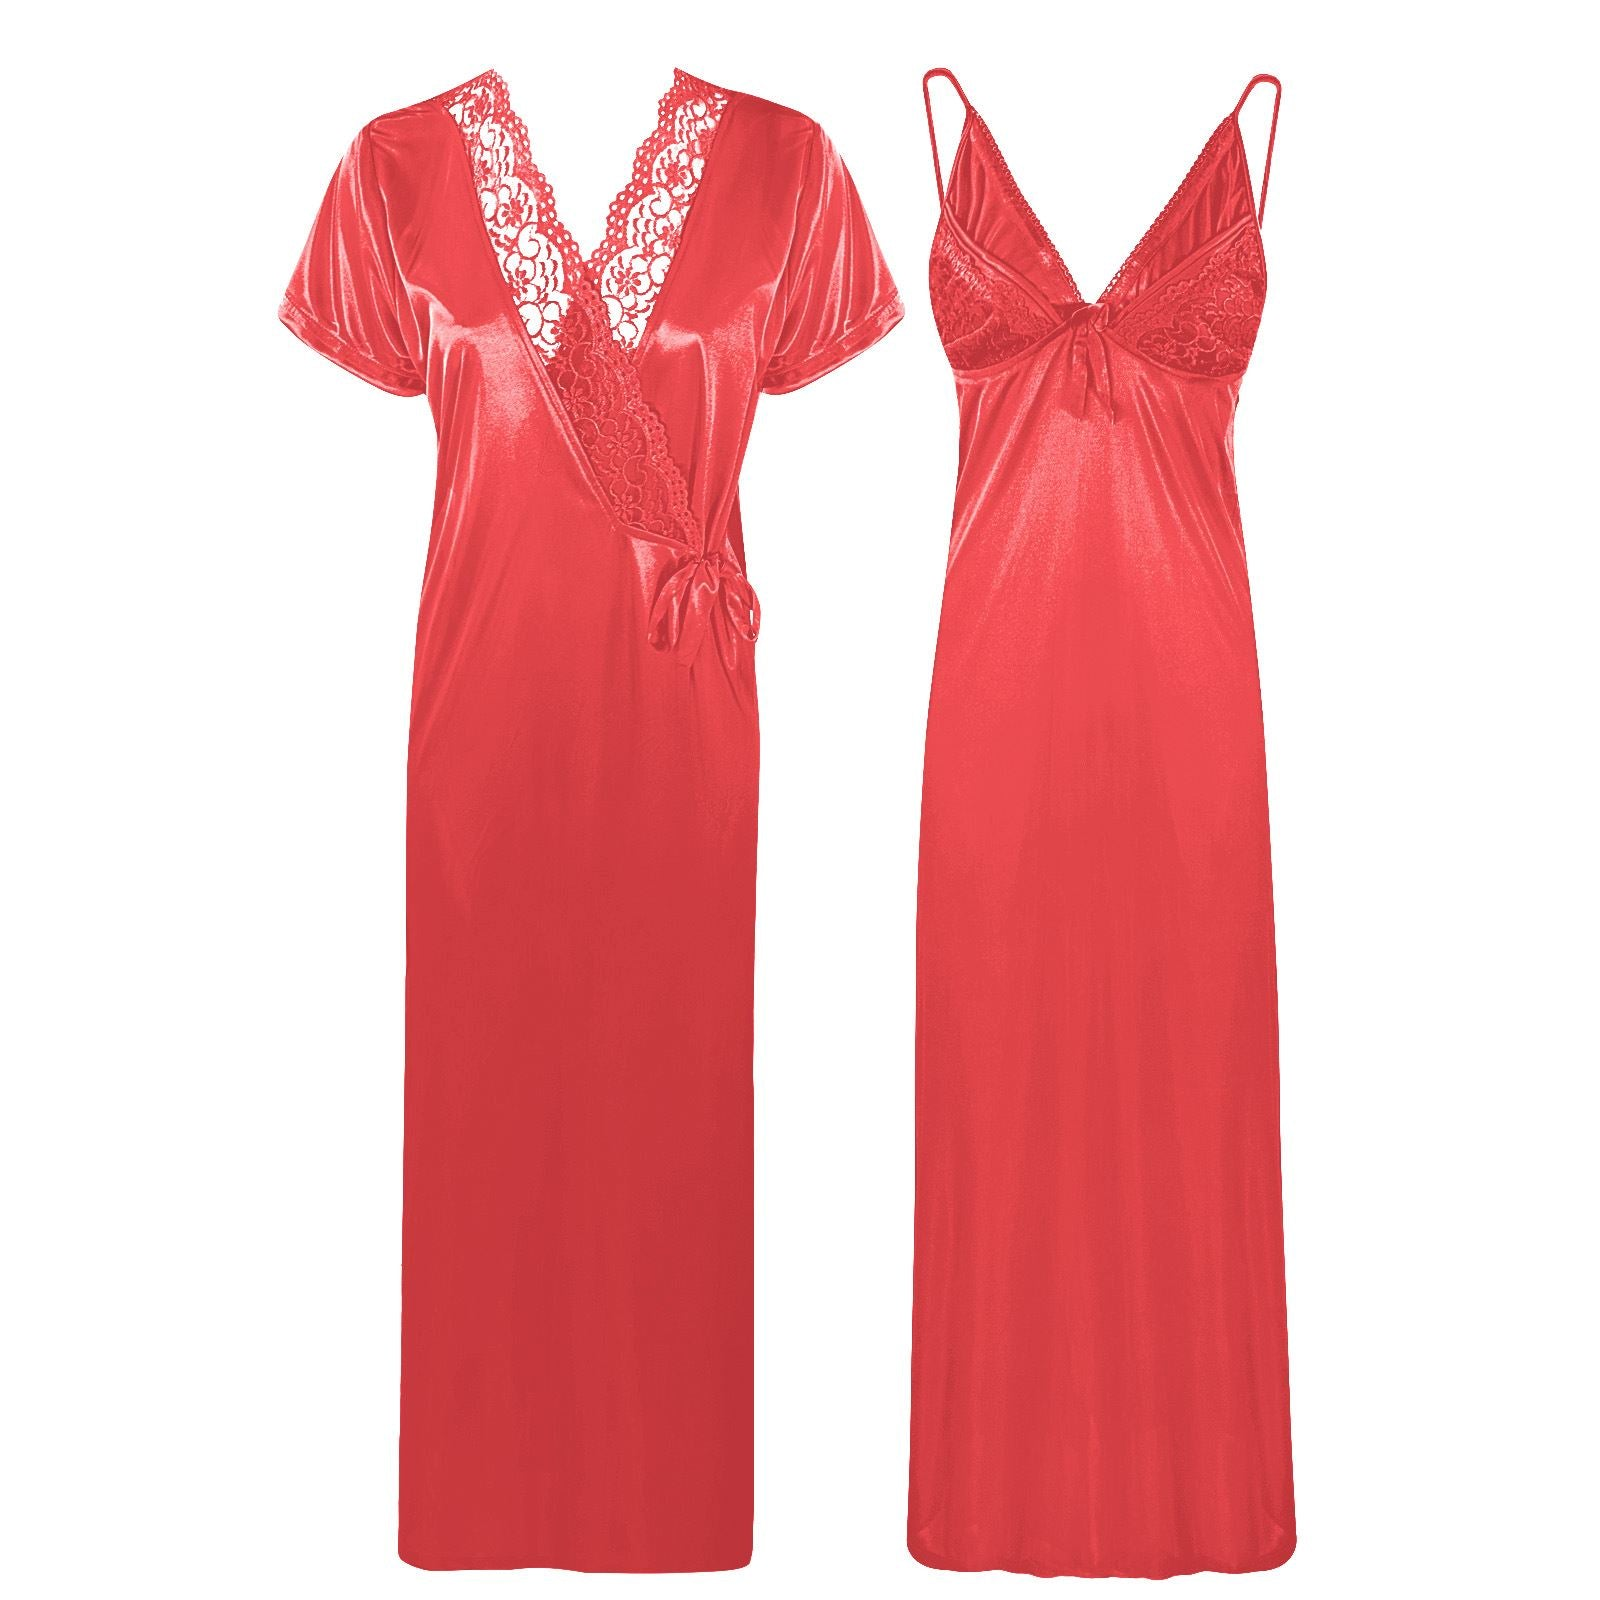 Satin Strappy Long Nighty With Robe [colour]- Hautie UK, #Nightfashion | #Underfashion